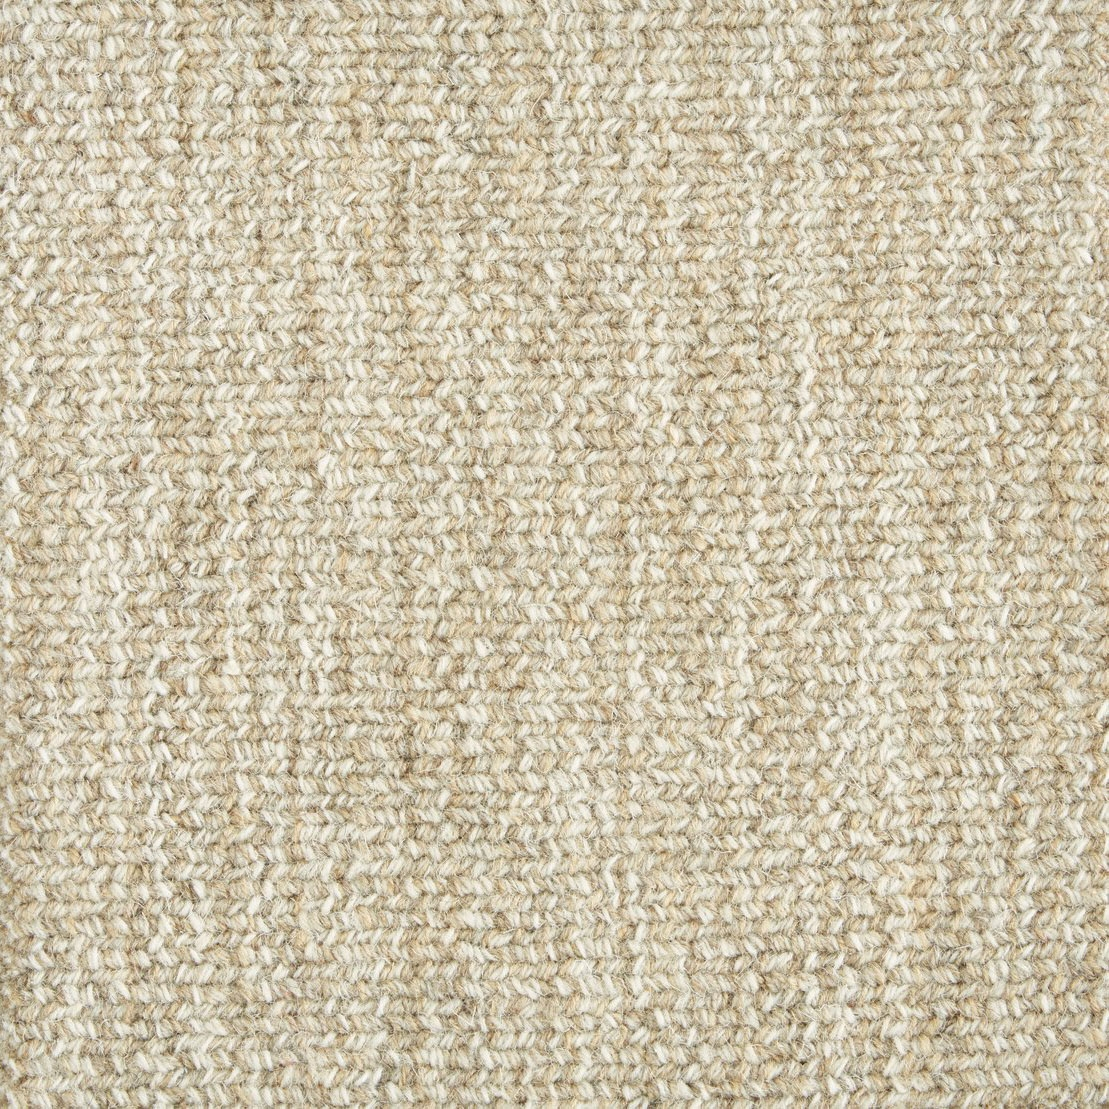 Perth Naturals Carpets Collection Tim Page Carpets